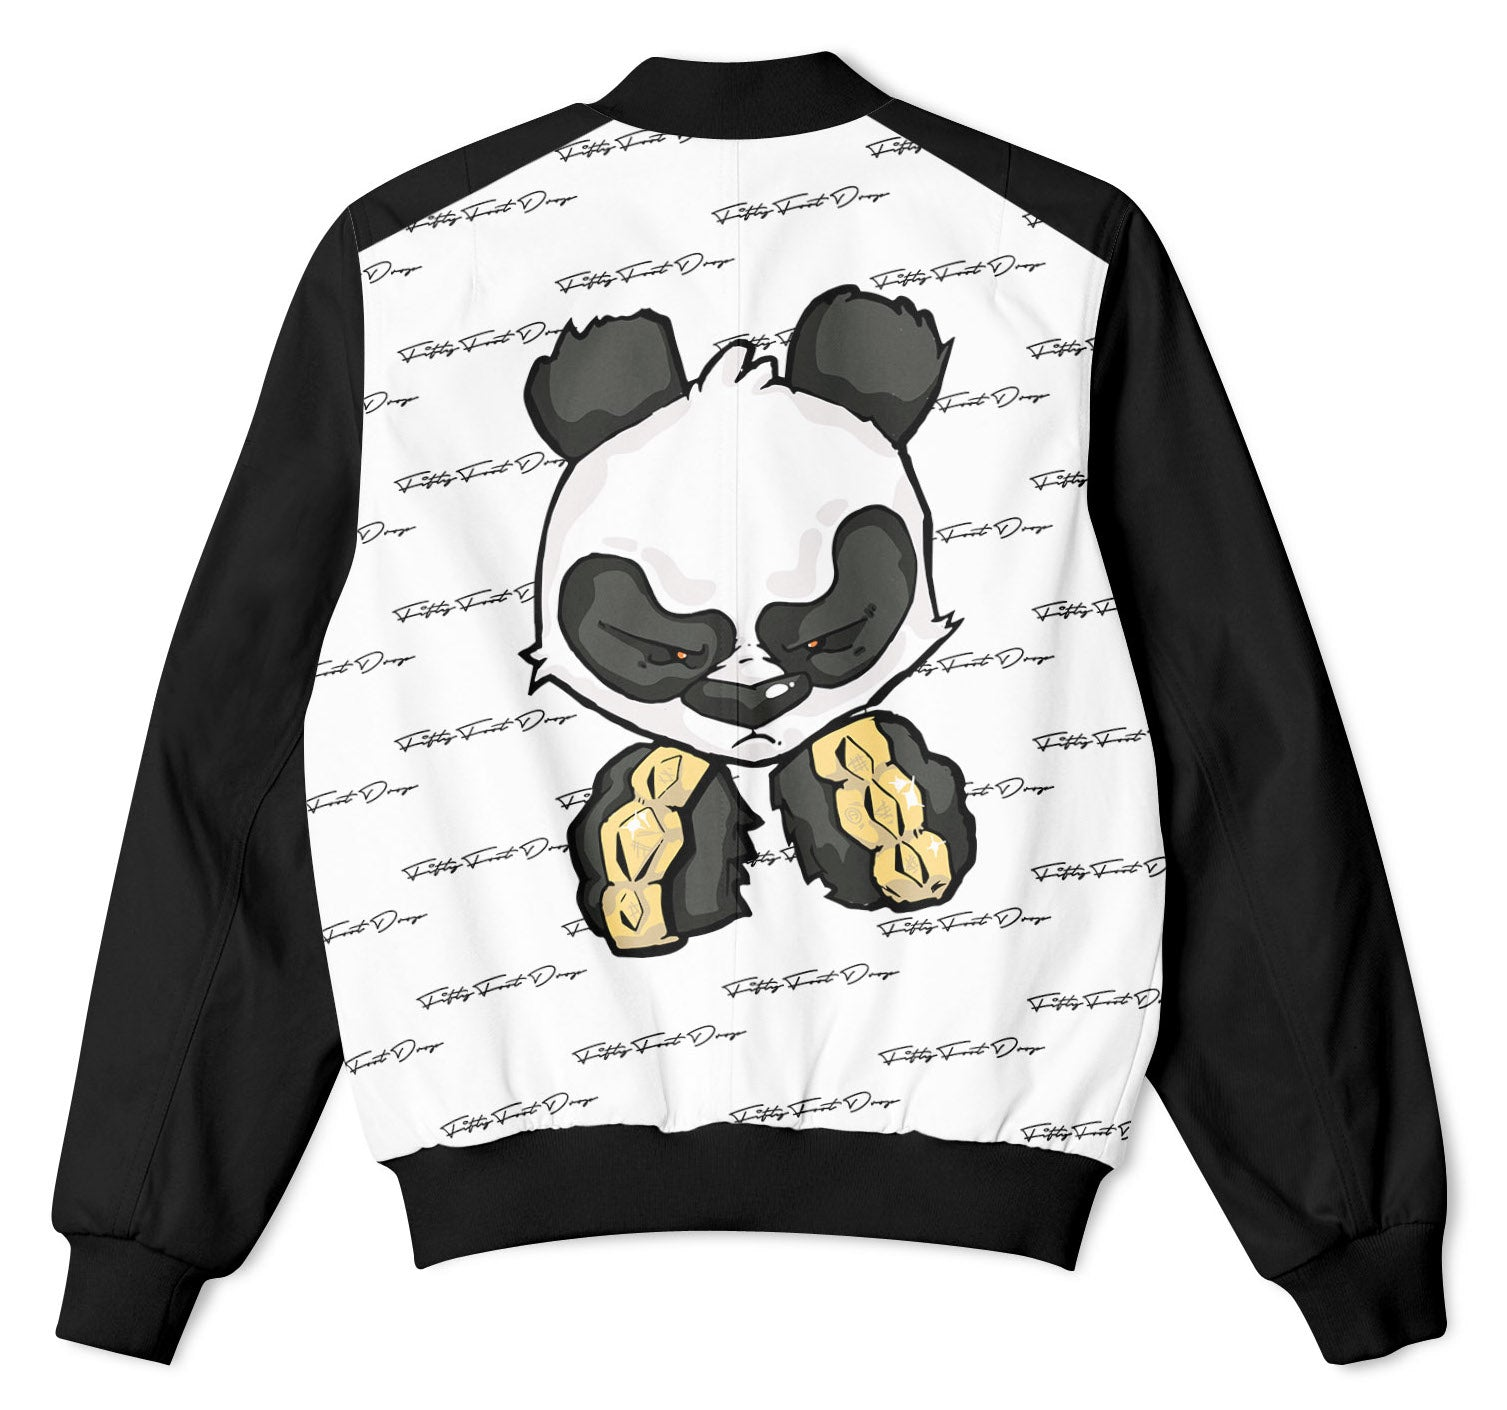 PANDA POWER - FIFTY FOOT DROP - BOMBER JACKET